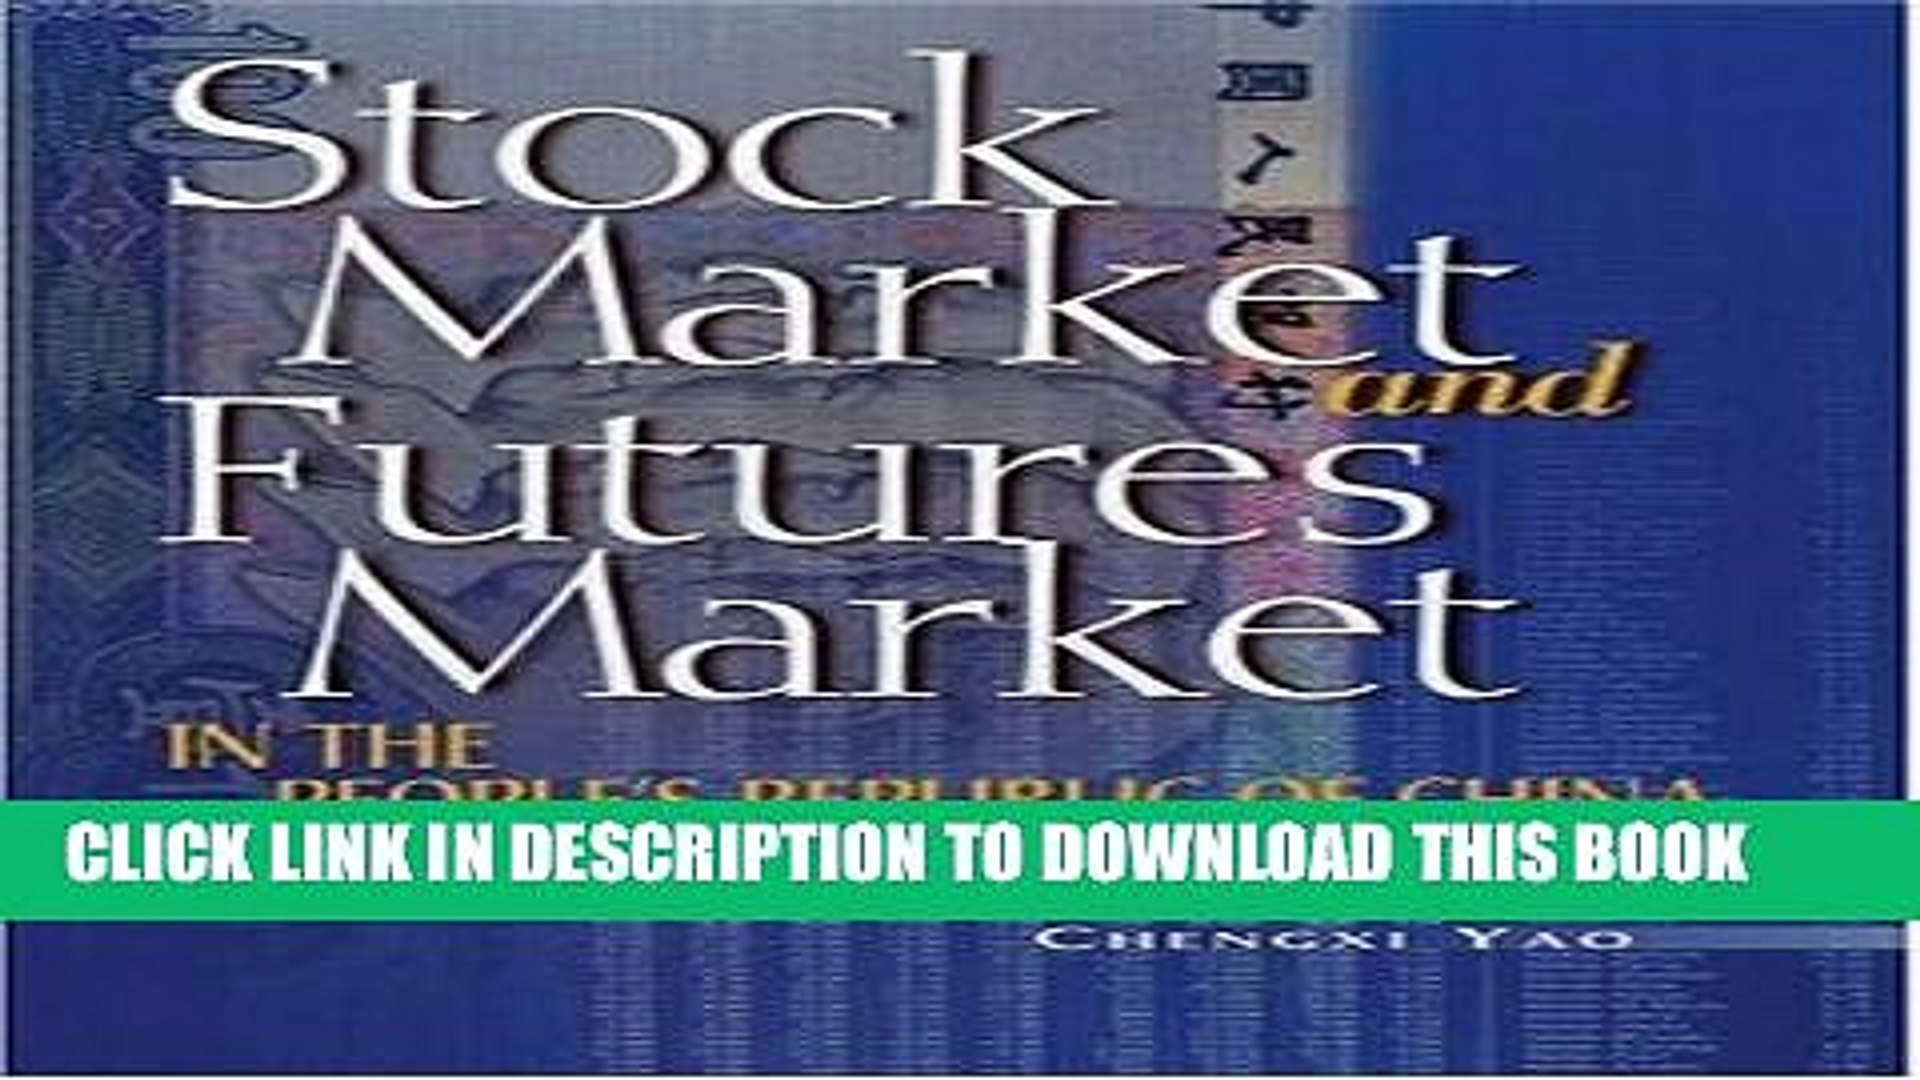 [PDF] Stock Market and Futures Market in the People s Republic of China Full Online